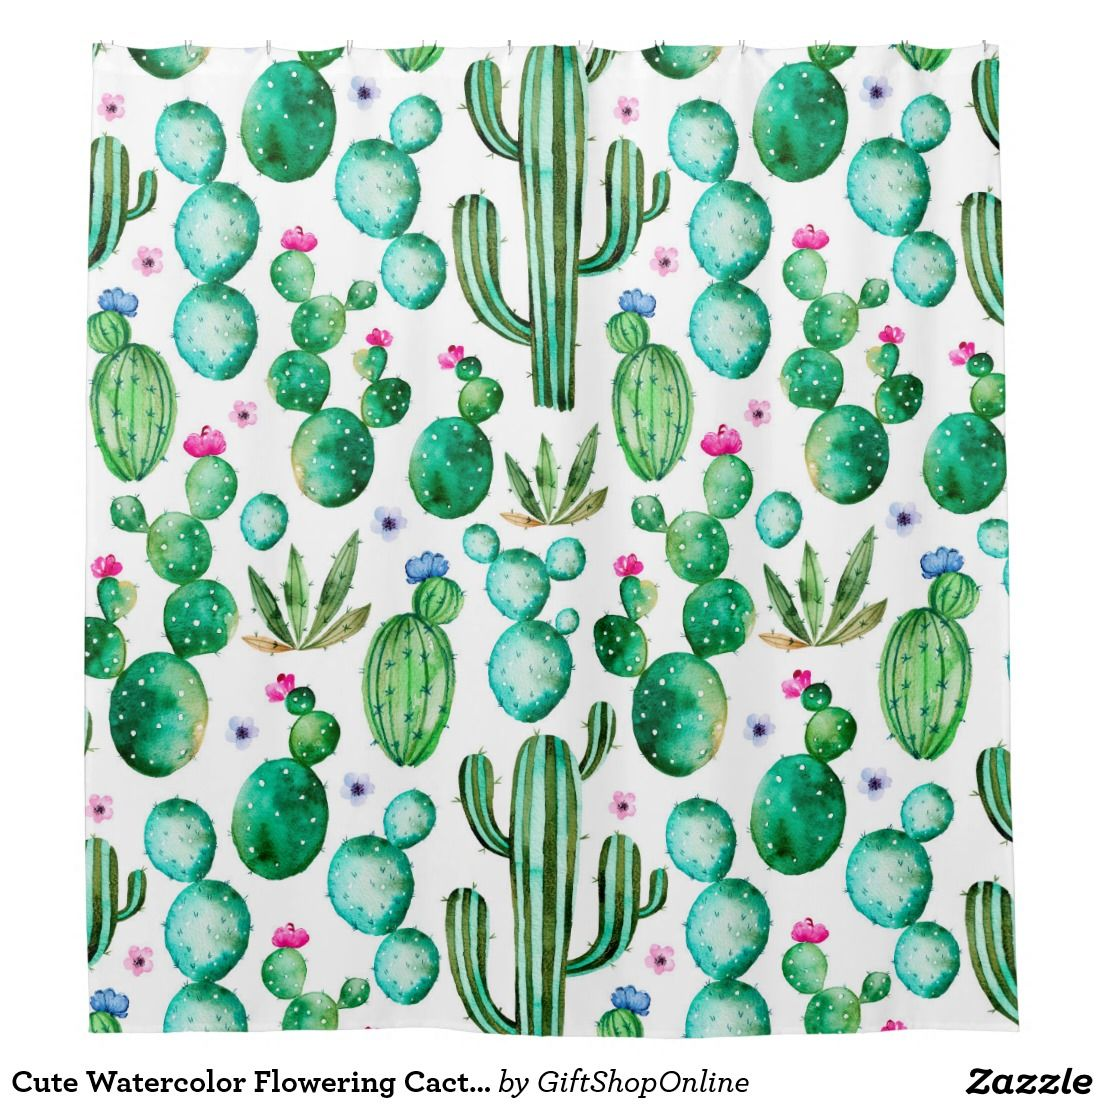 Cute Watercolor Flowering Cactus Patterned Shower Curtain Zazzle